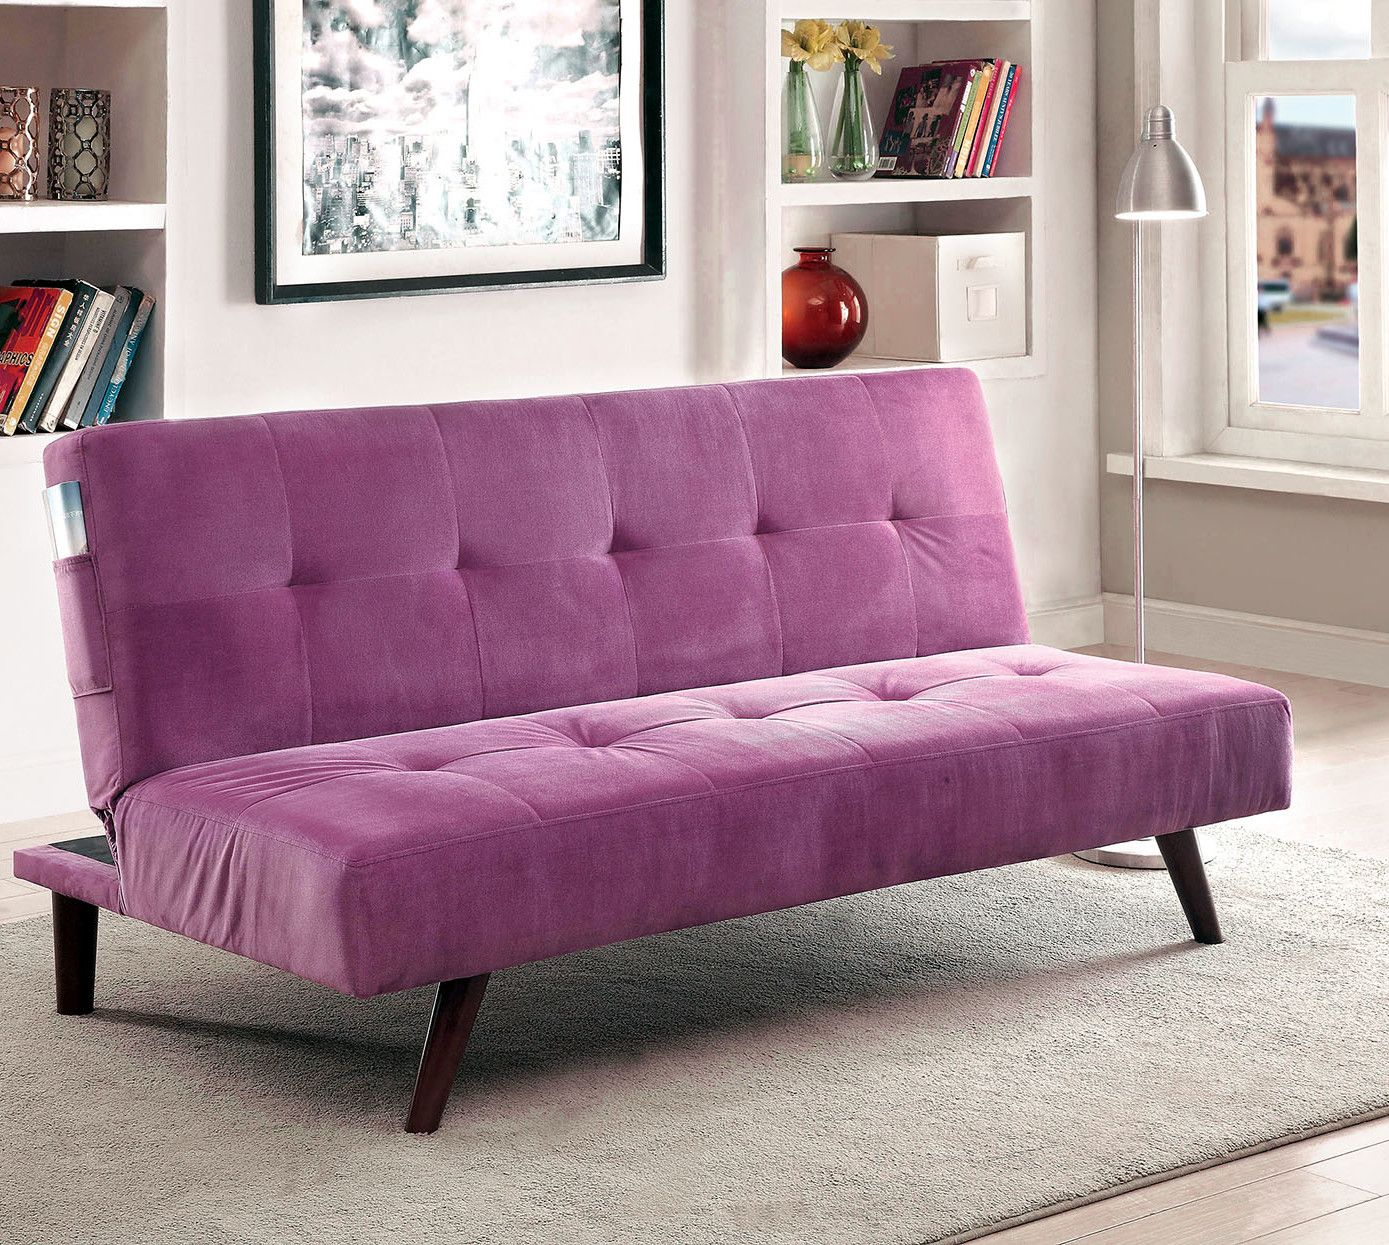 Tufted Flannelette Sleeper Sofa Futon Sofa